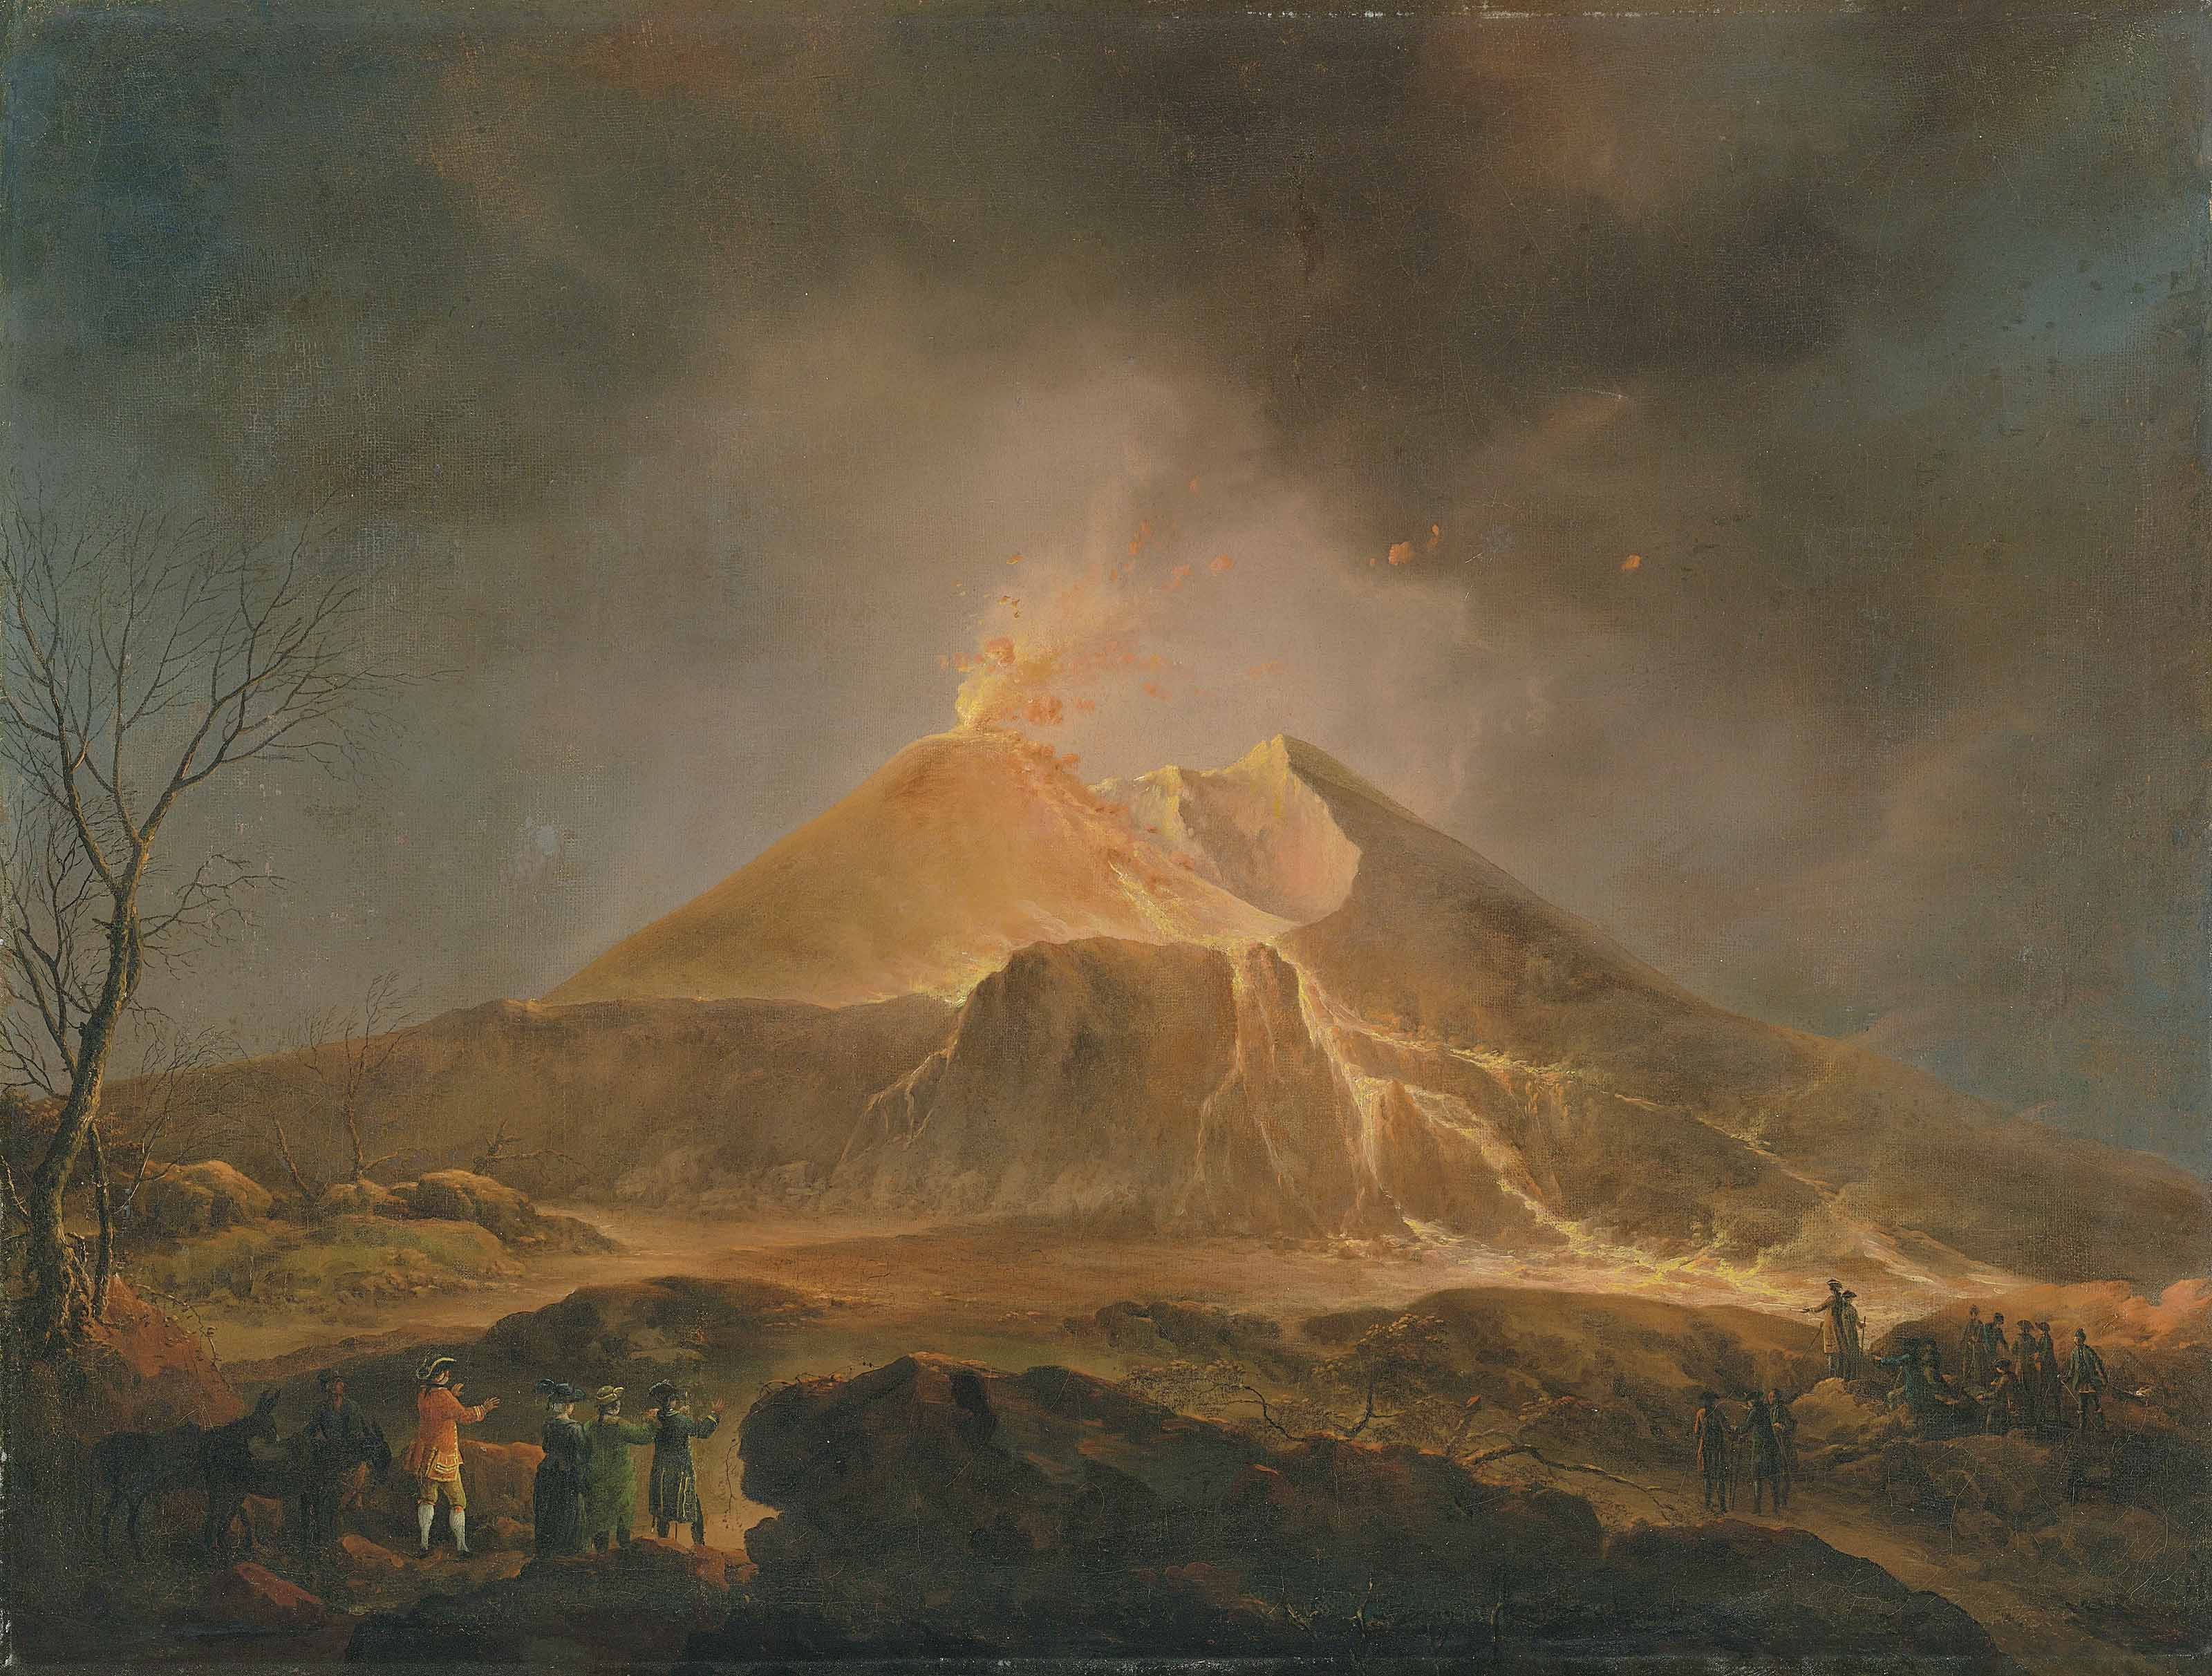 A view of Vesuvius erupting with Sir William Hamilton observing from afar with his crew, the painter on the right